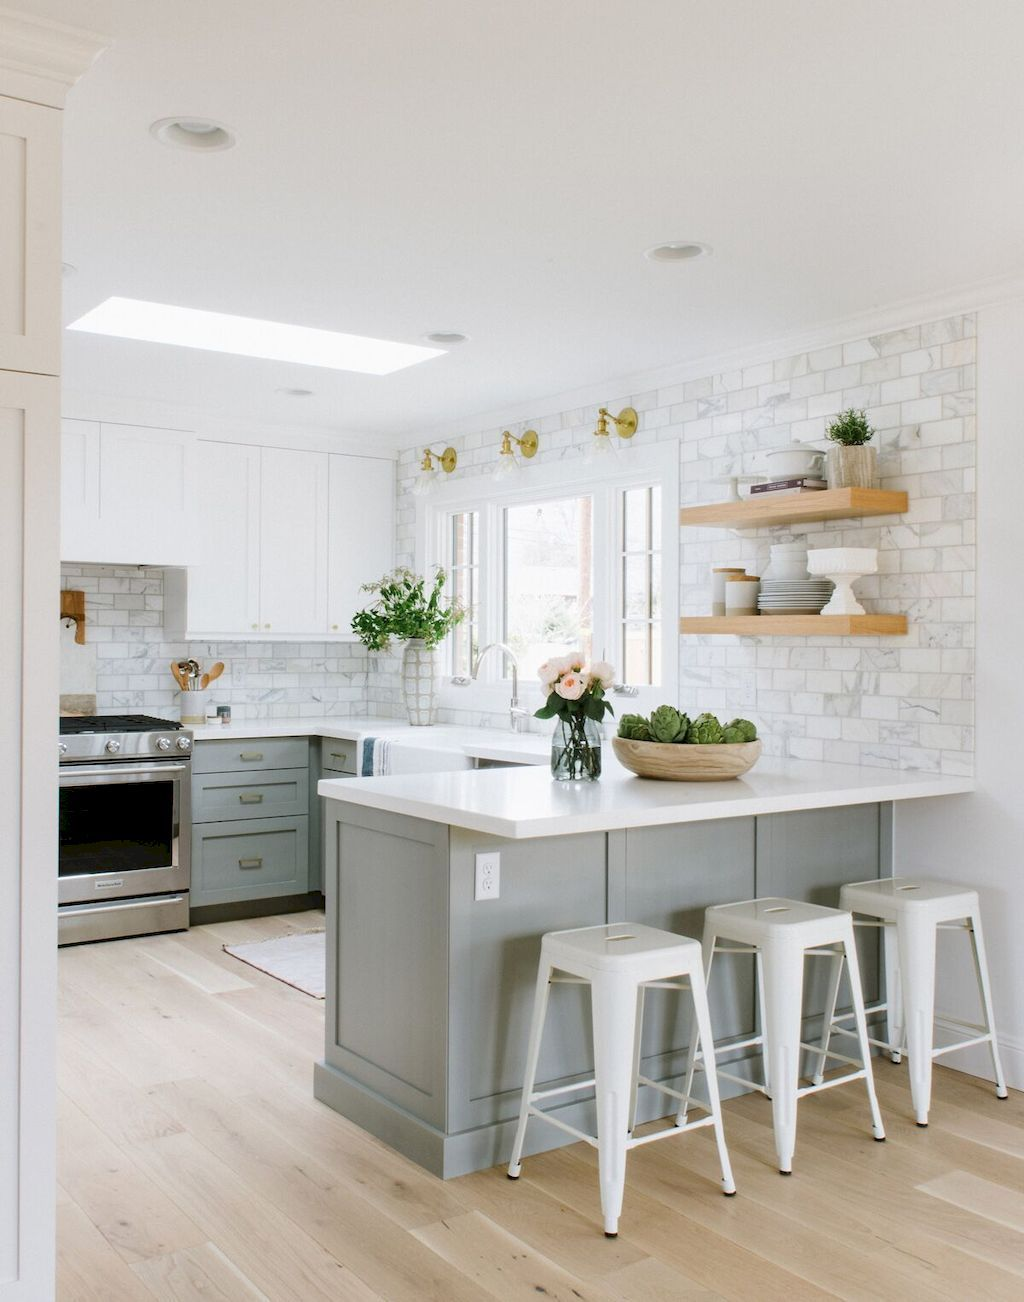 90 Inspiring Small Kitchen Remodel Ideas | Kitchens, House and ...